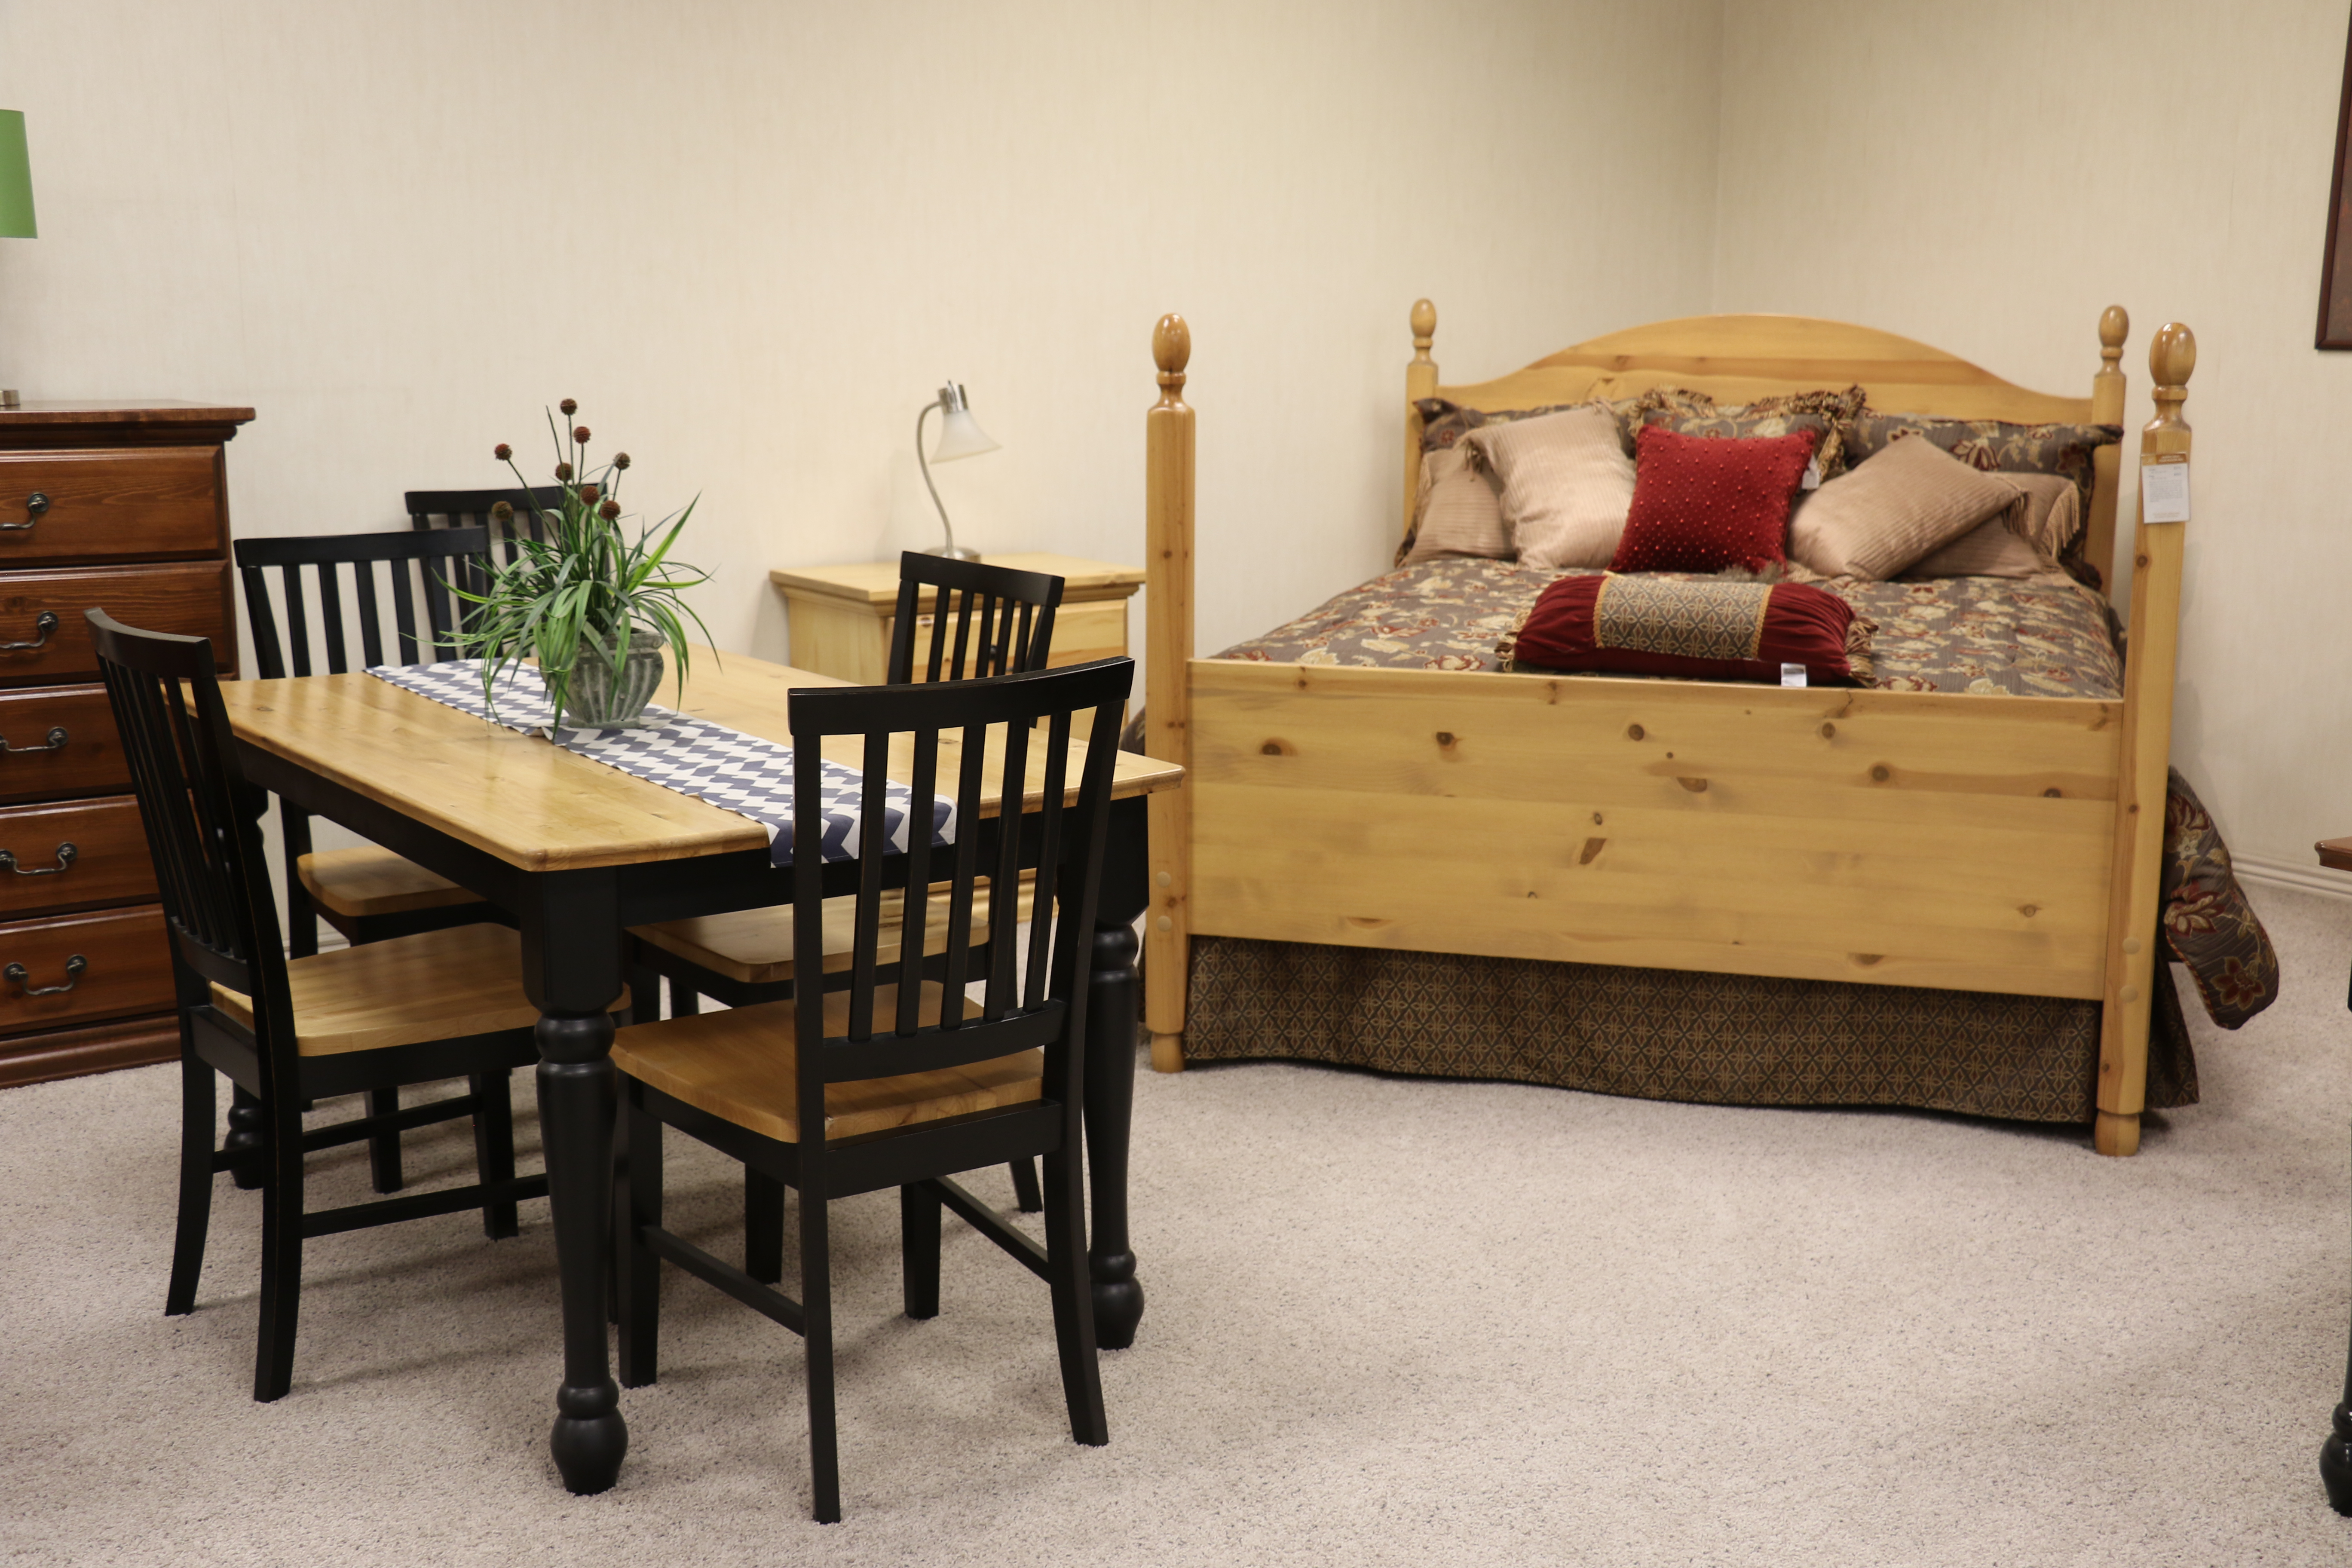 Furniture made at the Deseret Manufacturing facility in Salt Lake City is on display in a showroom and is available to purchase through the Deseret Industries.